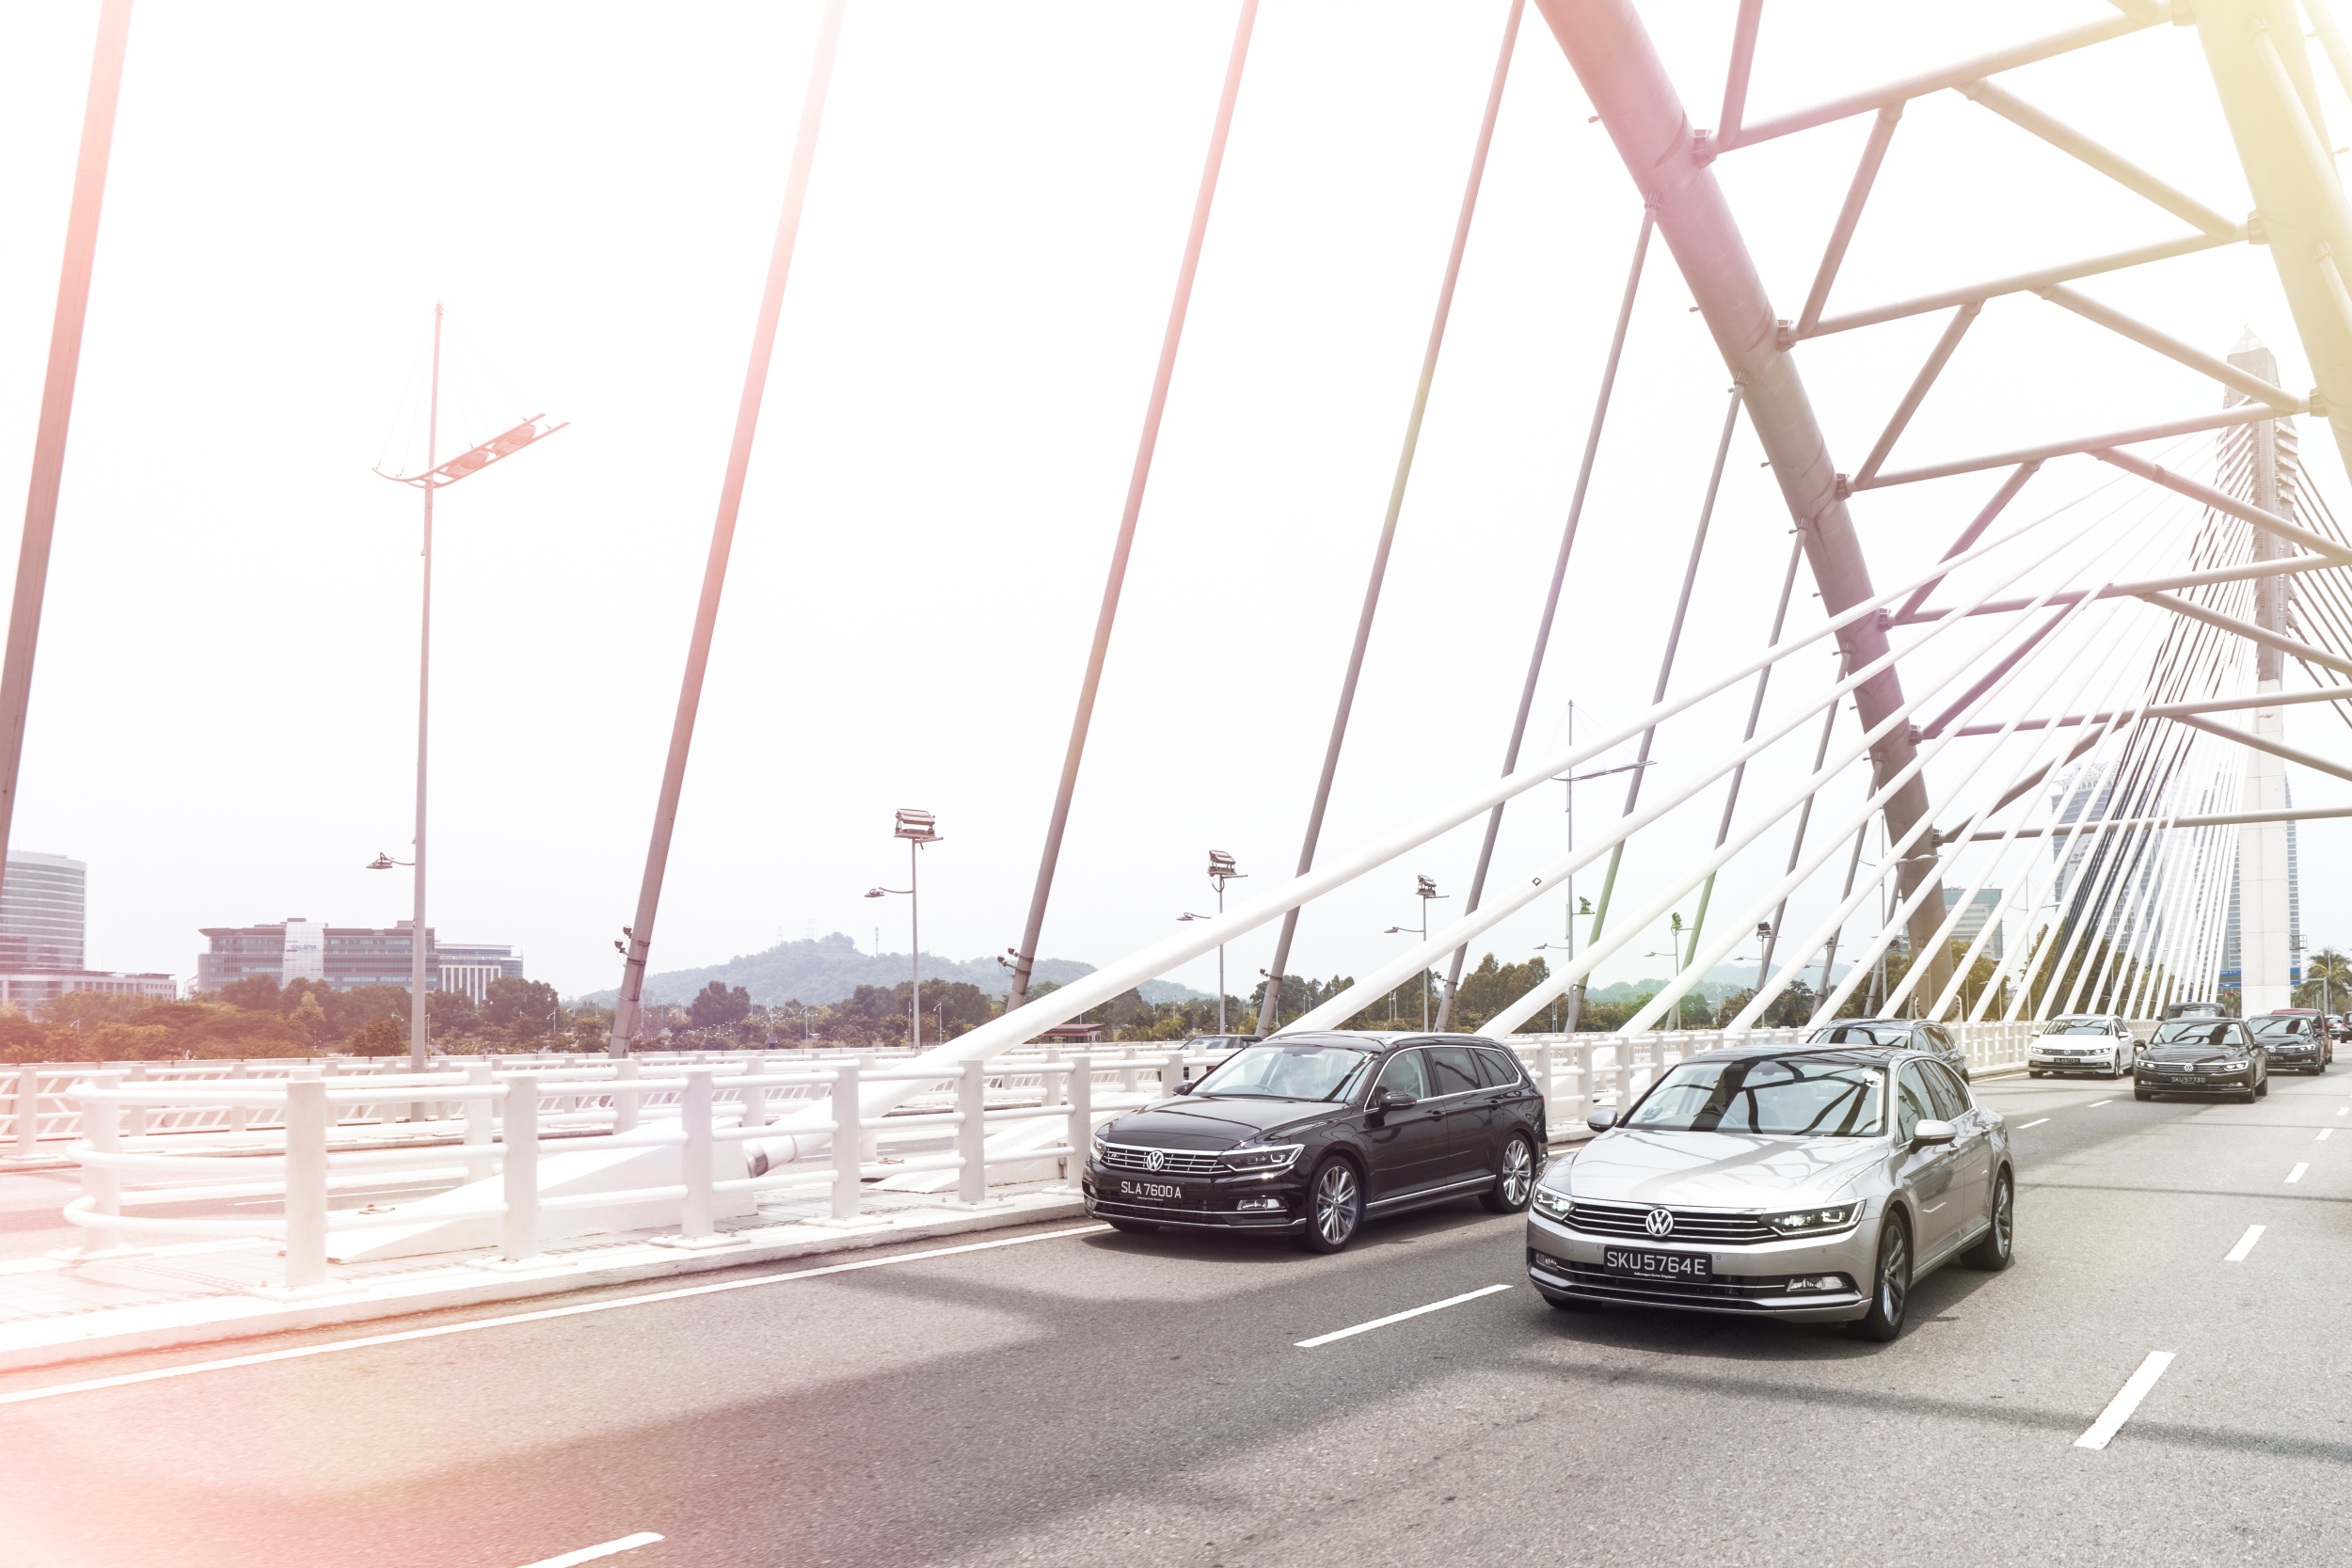 Passat_drive_bridge115 copy1lowres.JPG